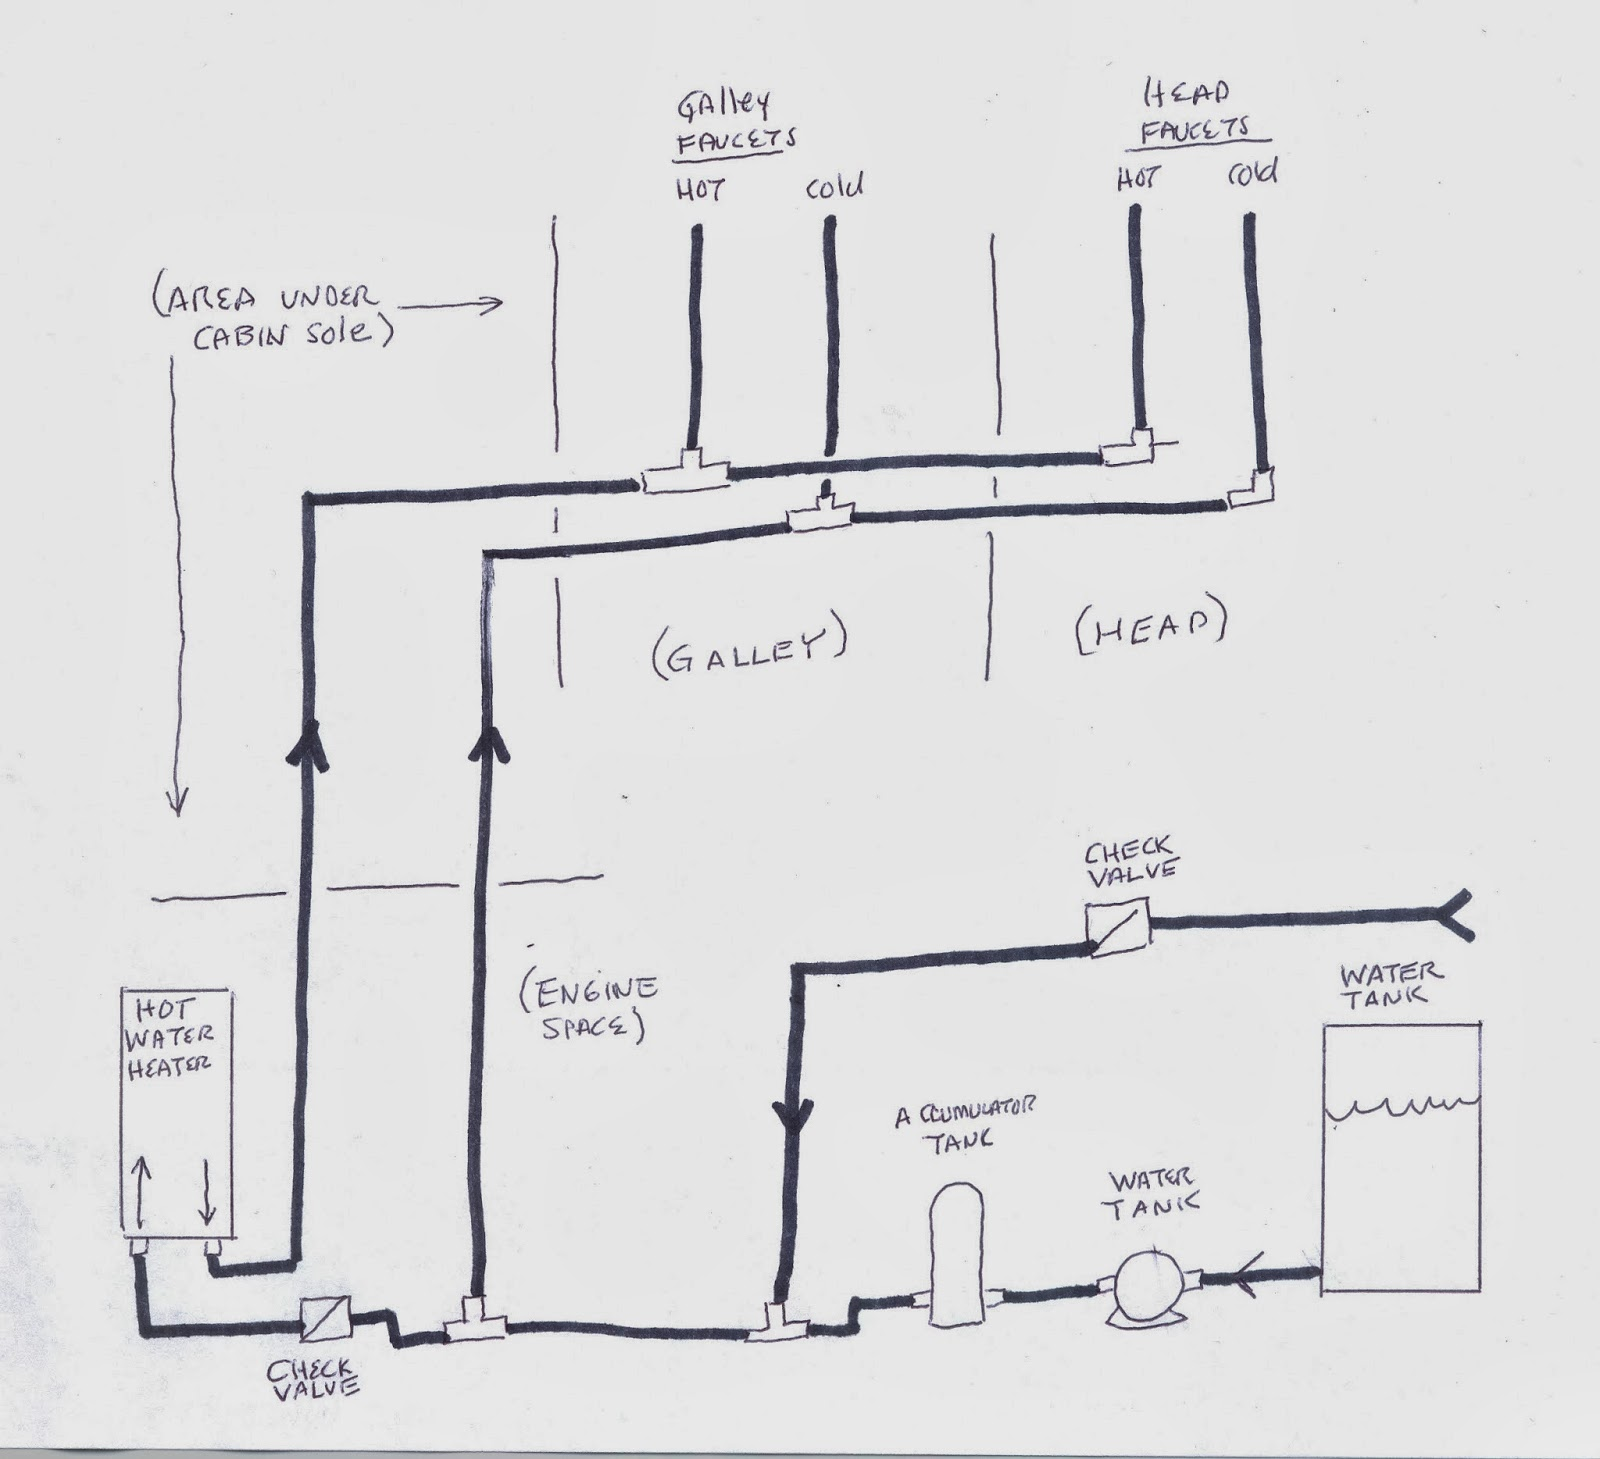 toilet schematic diagram 1964 ford galaxie wiring water heater get free image about